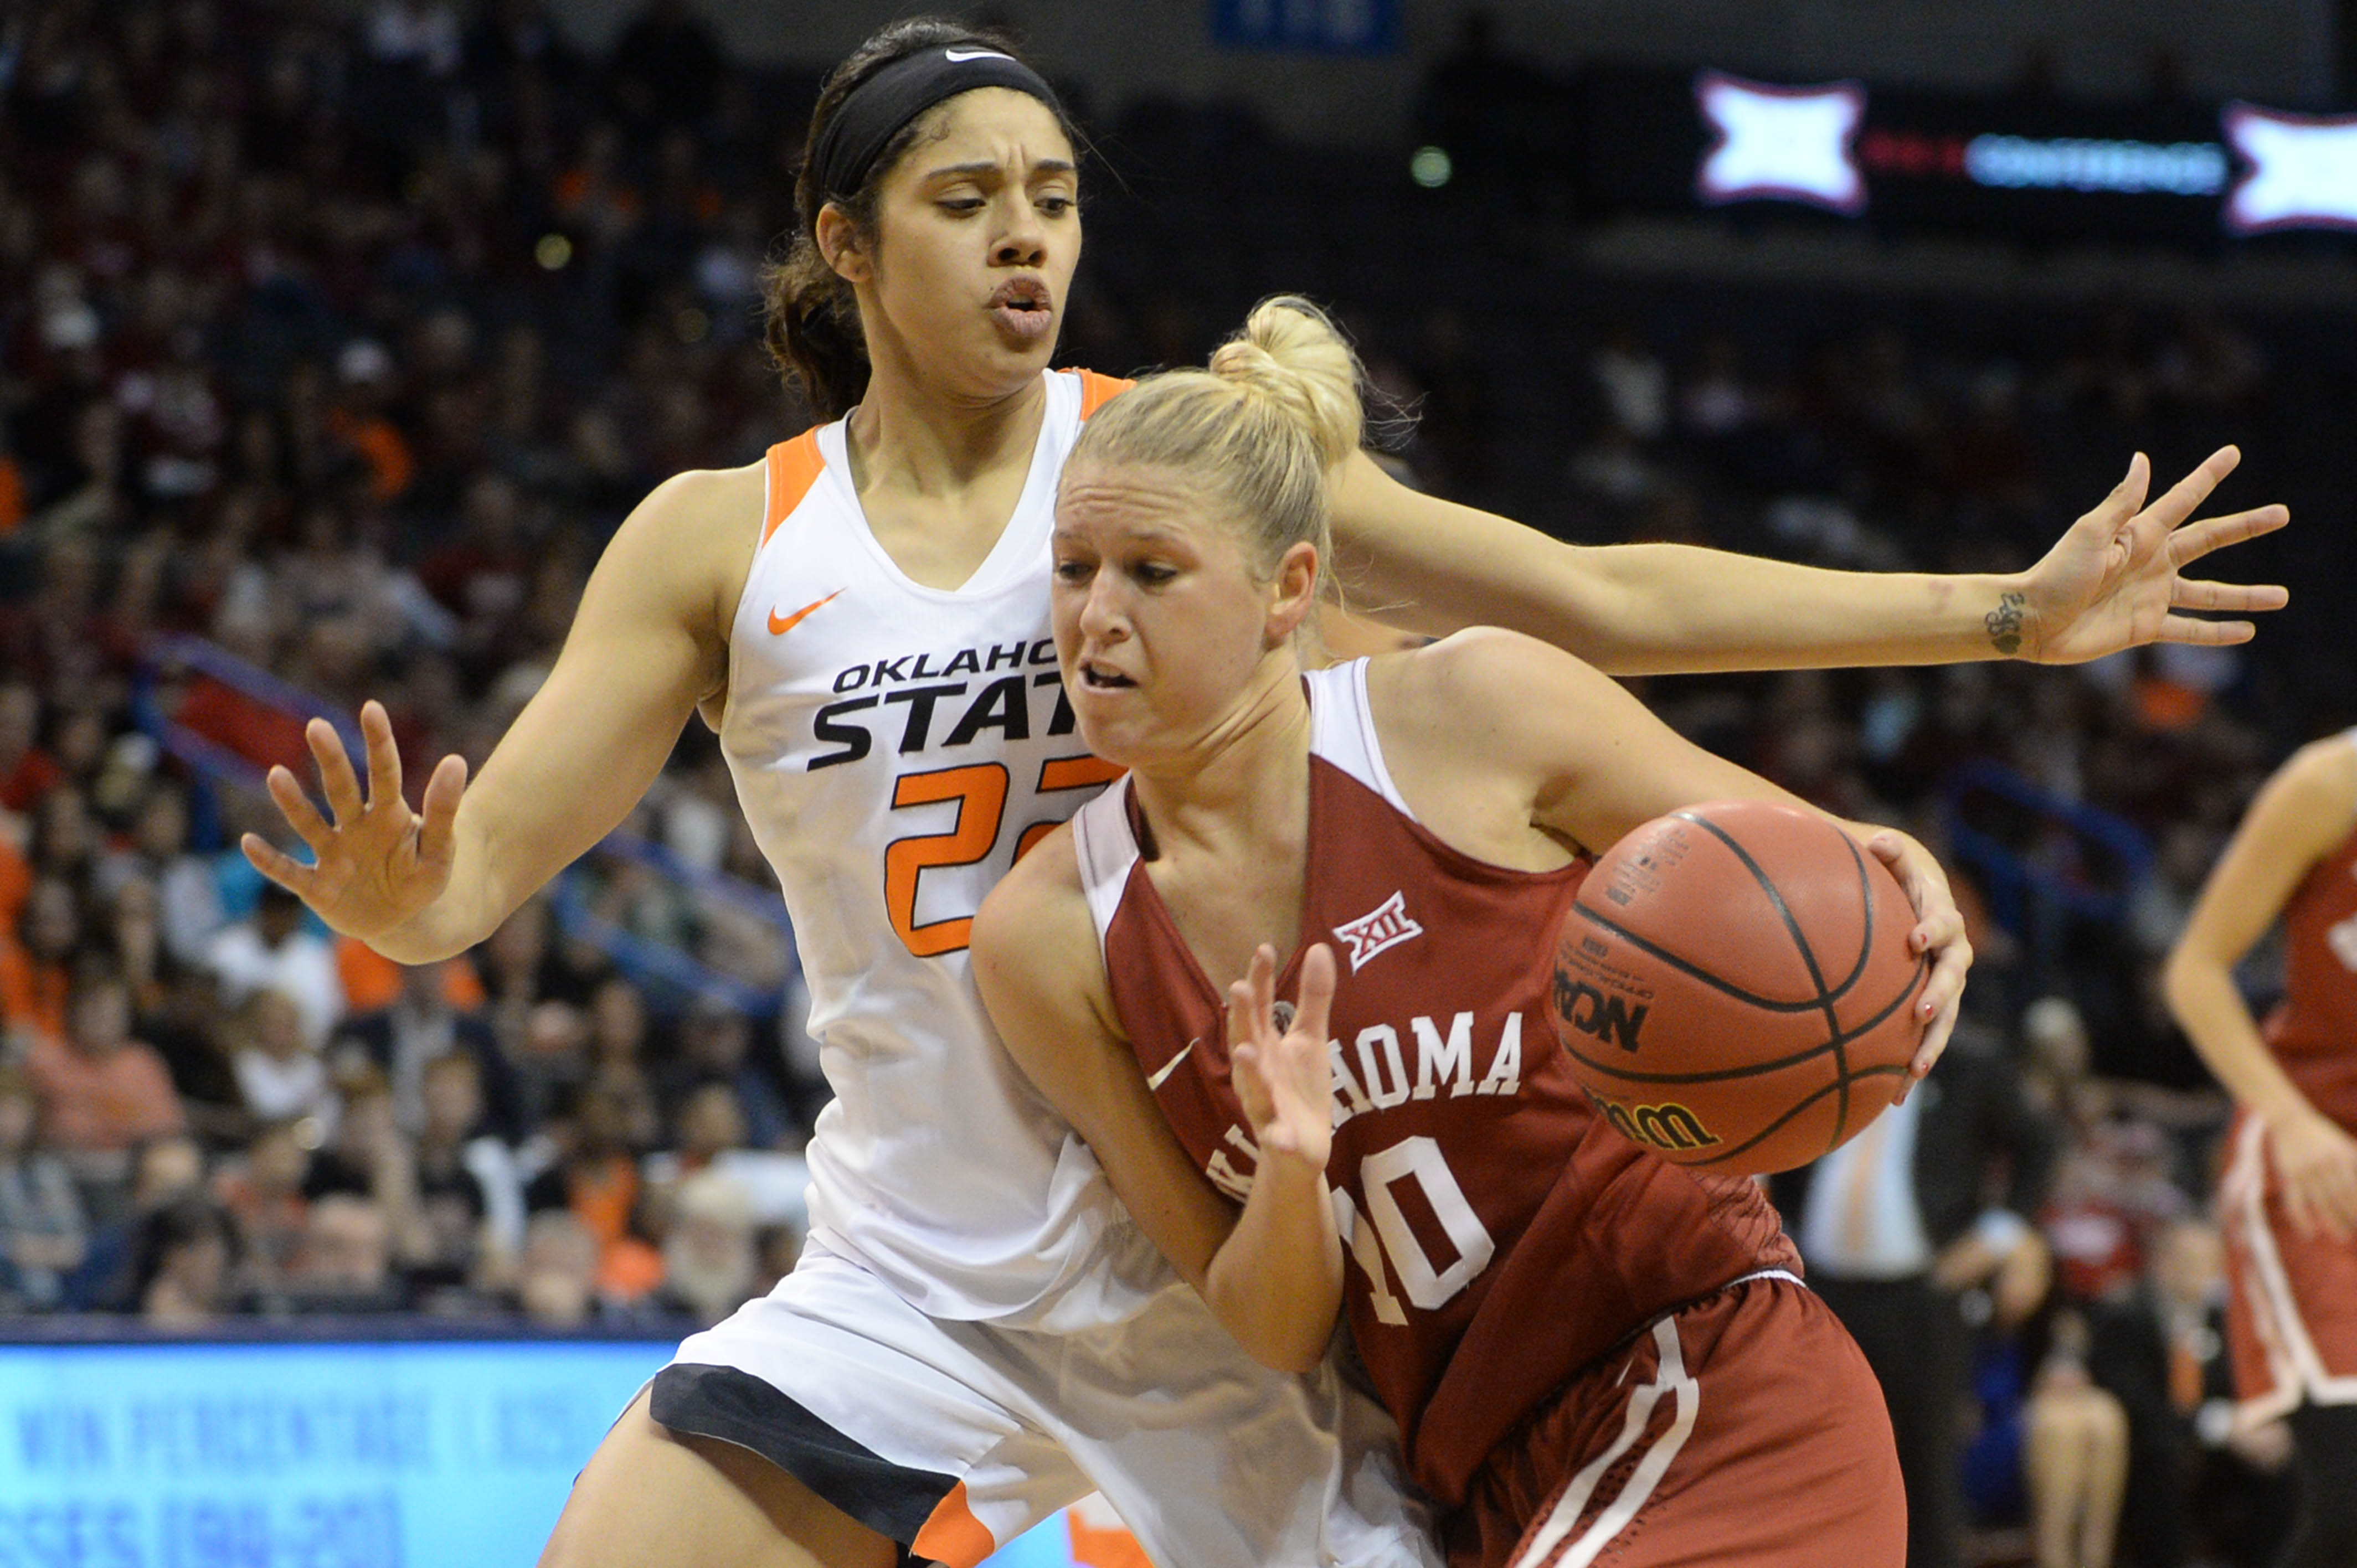 Yes, it's been nearly two years since a USA Today photographer was at an Oklahoma State game.